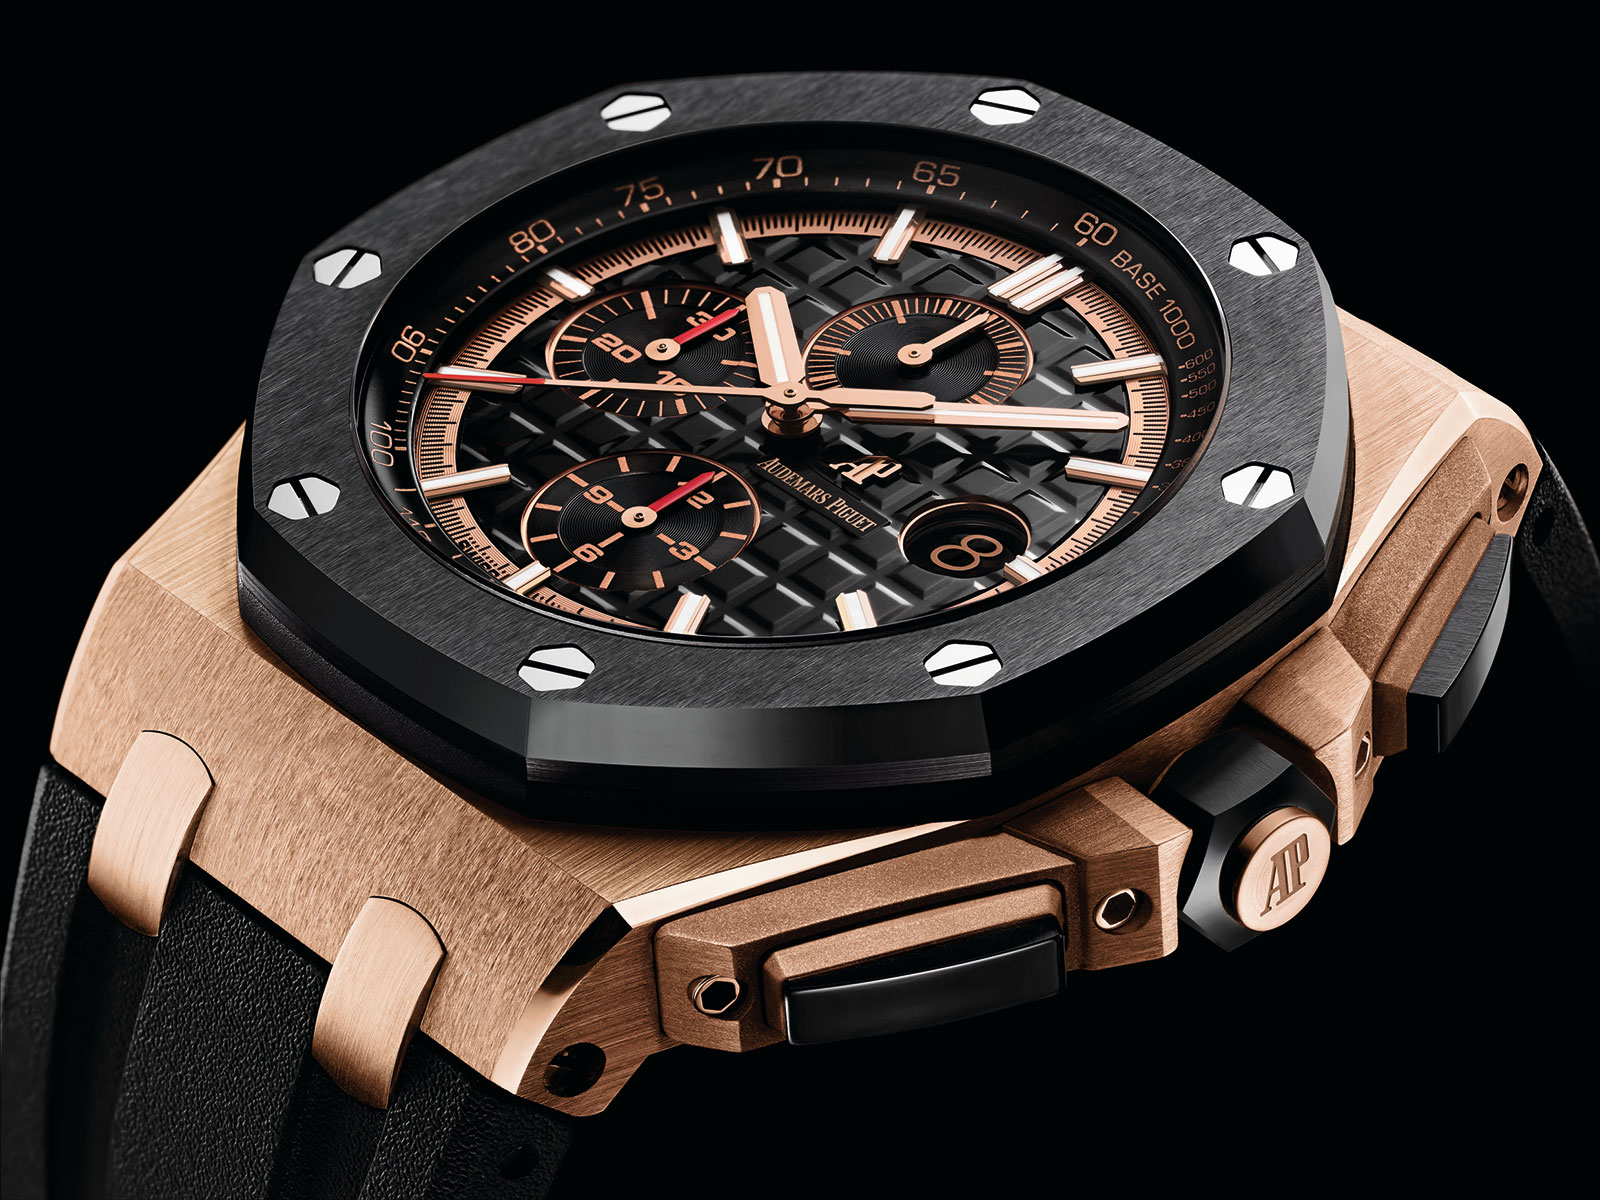 Audemars Piguet Royal Oak Offshore Novelty 26401RO 2